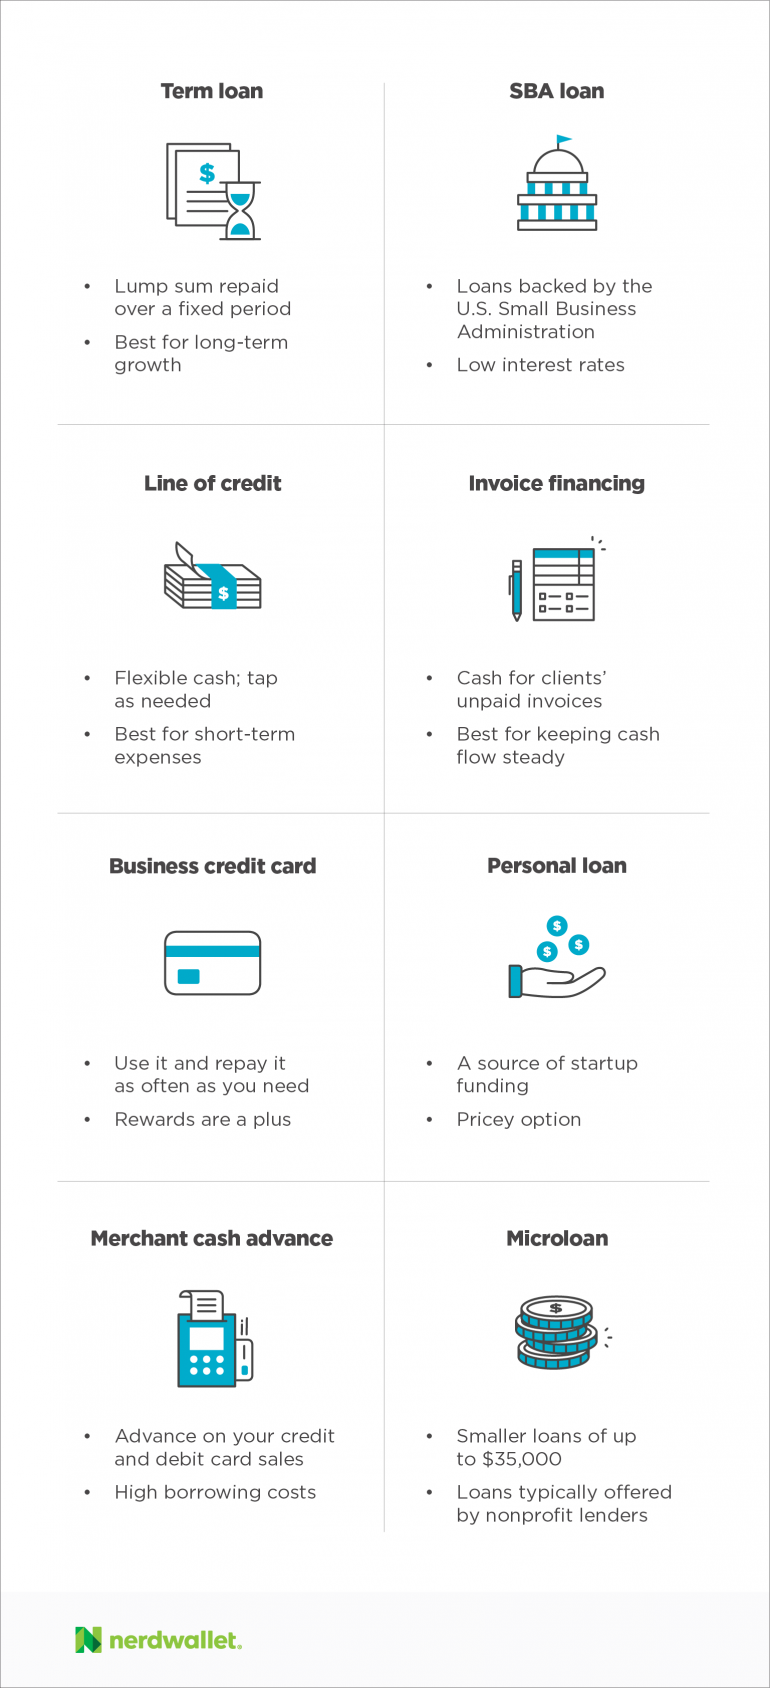 How to get a small business loan in 5 steps nerdwallet small business financing in simple terms reheart Images